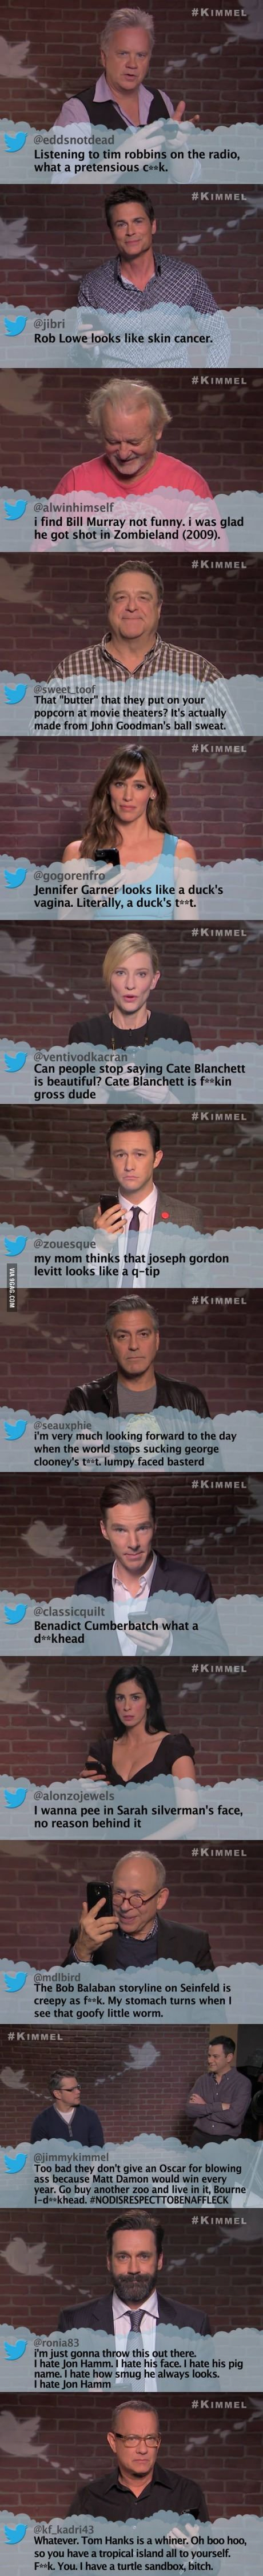 Celebrities read mean tweets. ---->dafuq you say about Benedict?!?!? OH NO